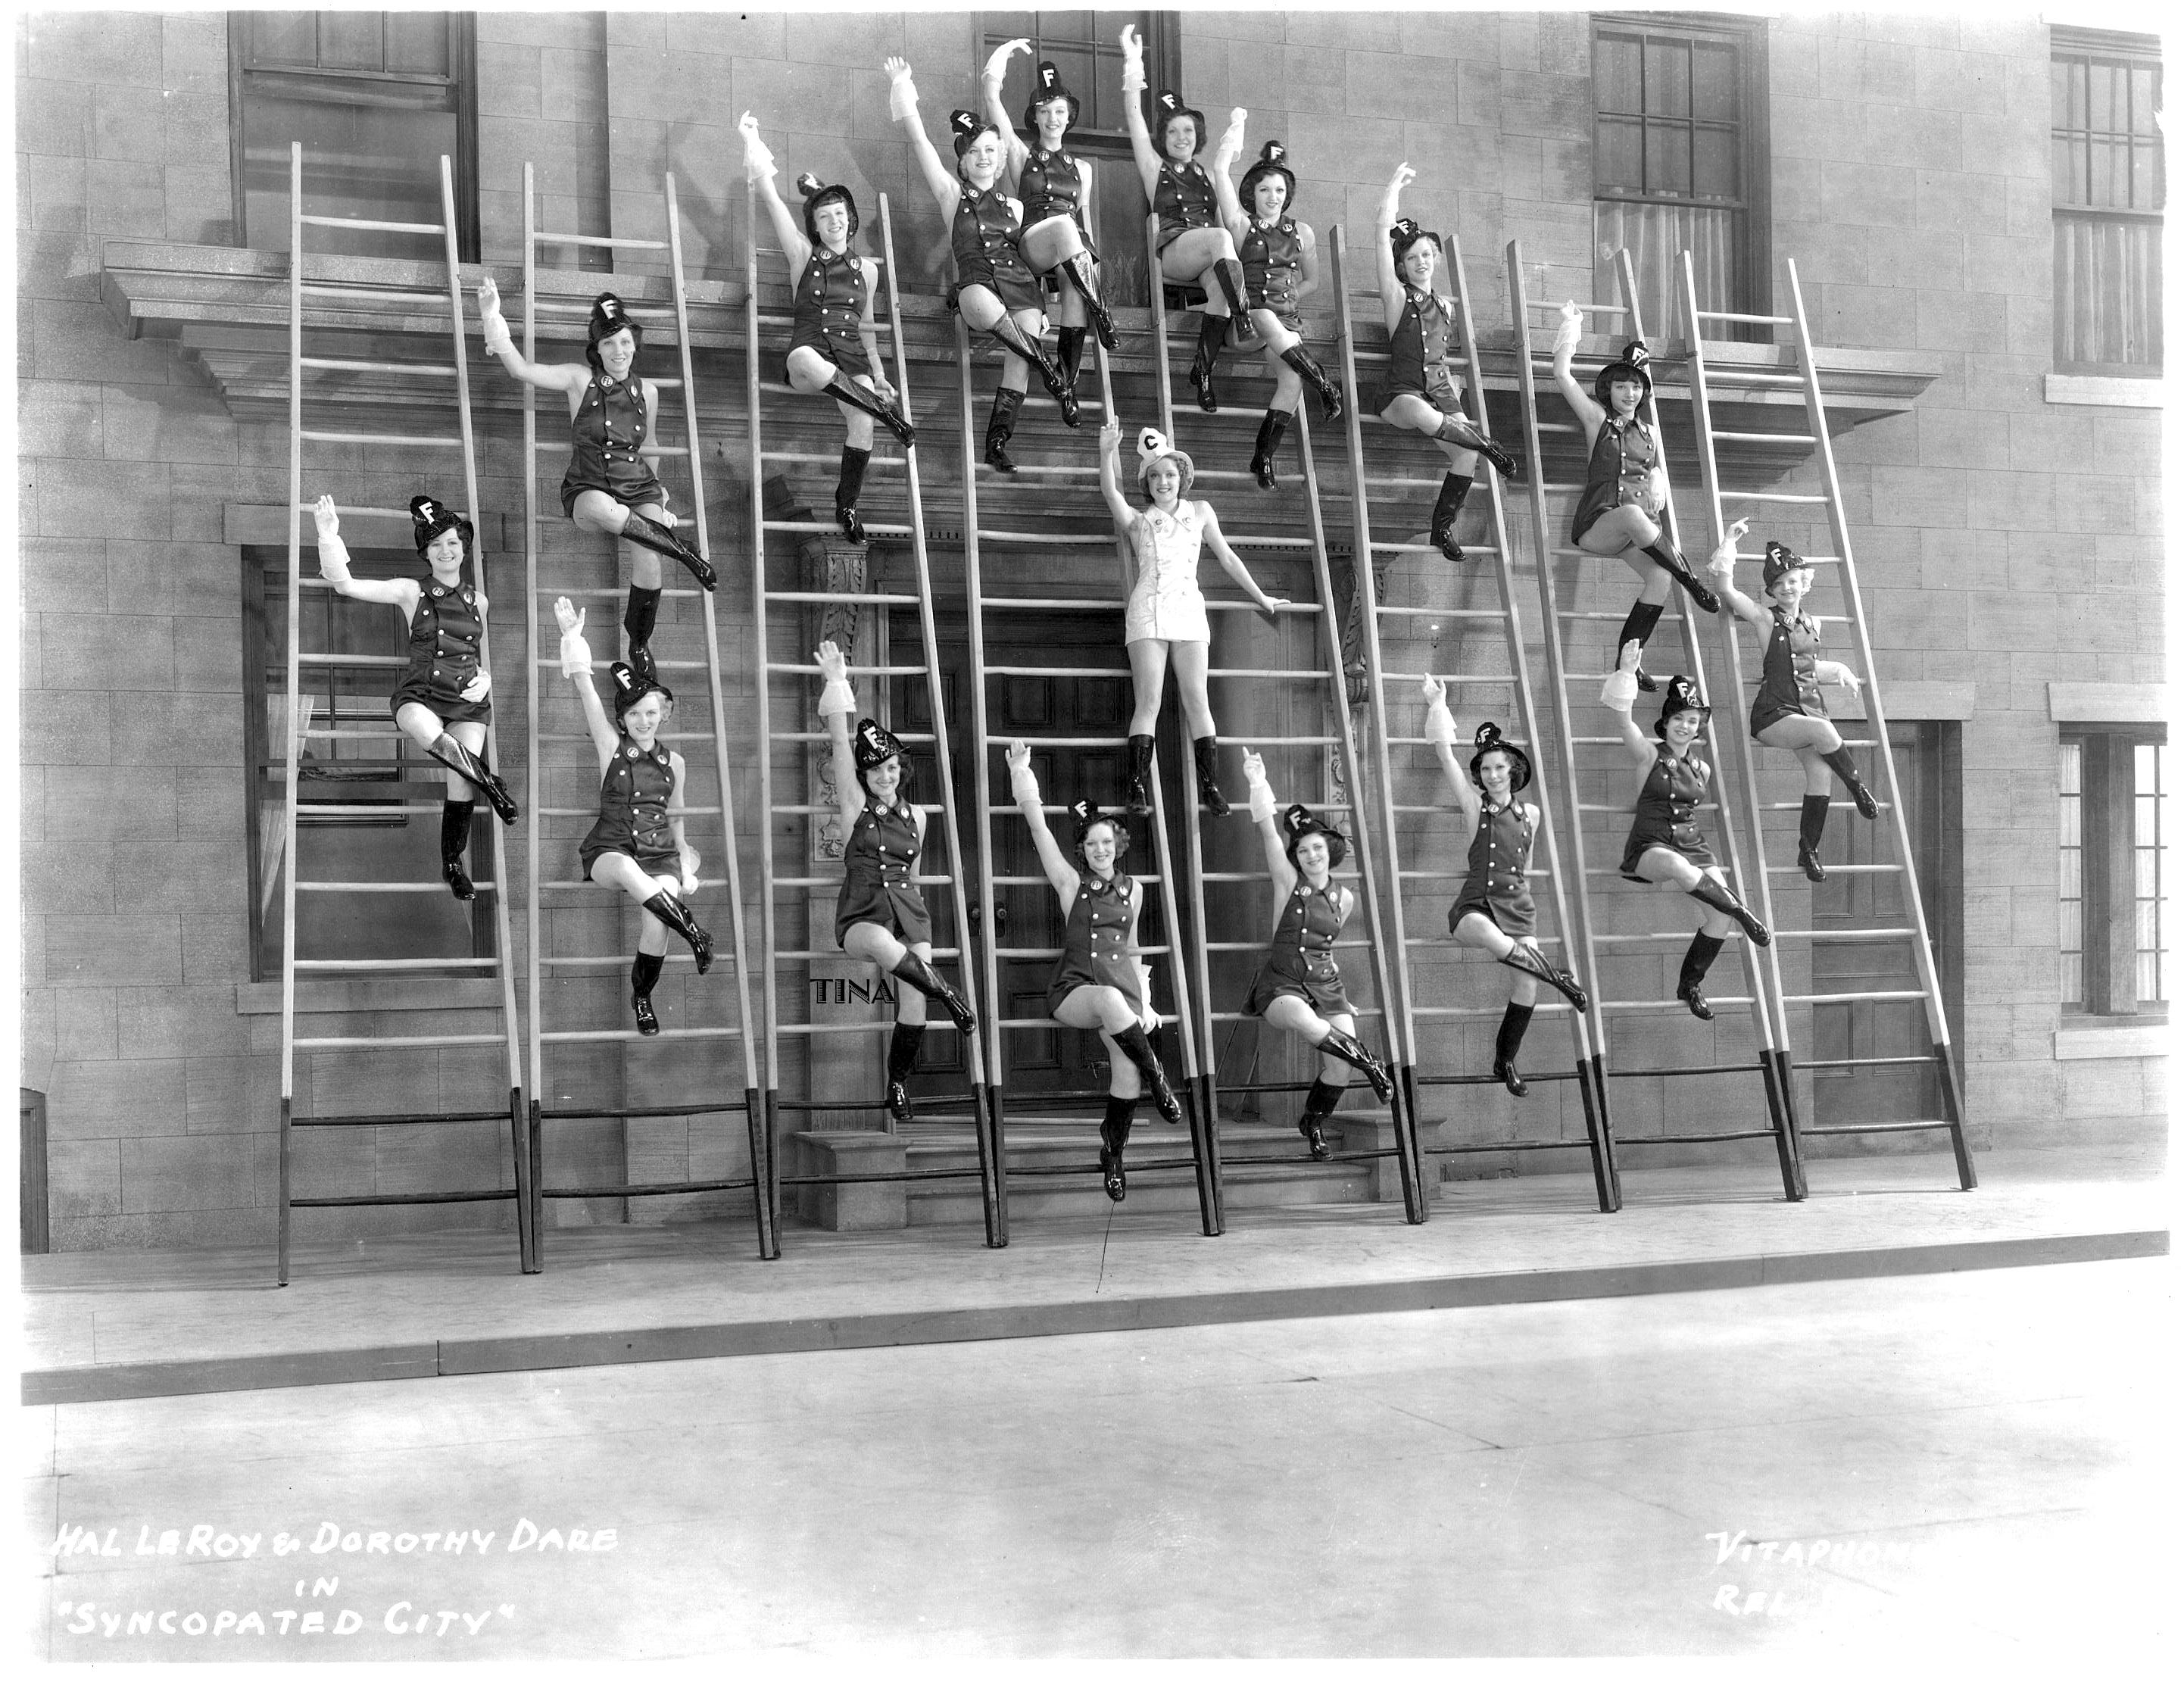 Tina, third from the left in the first row, in Syncopated City (1933).